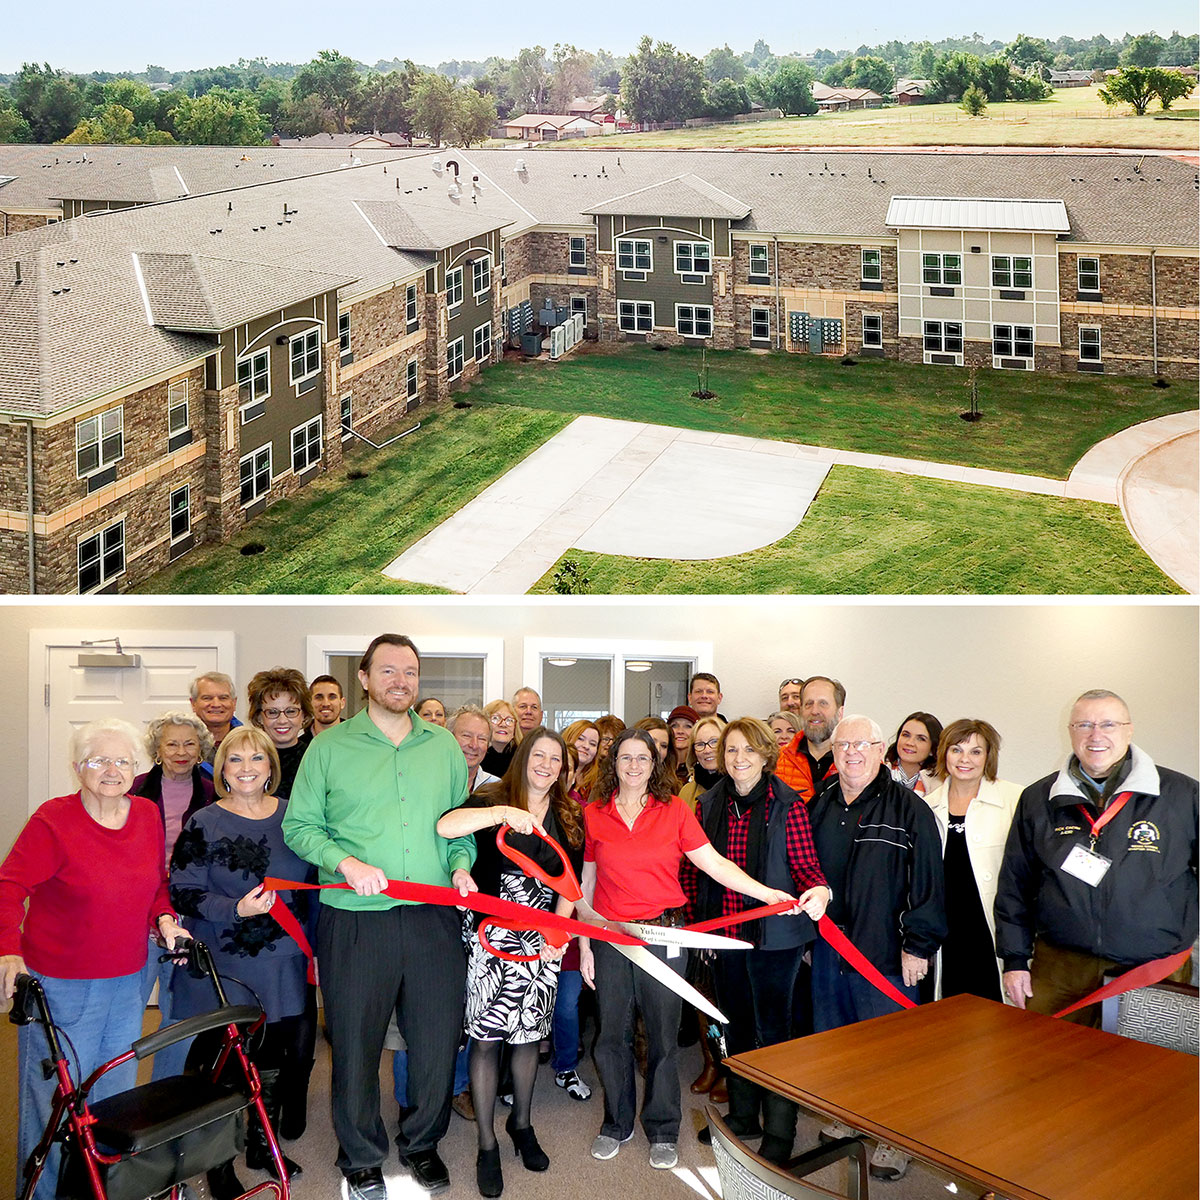 GRAND OPENING: THE RESIDENCE AT YUKON HILLS APARTMENTS